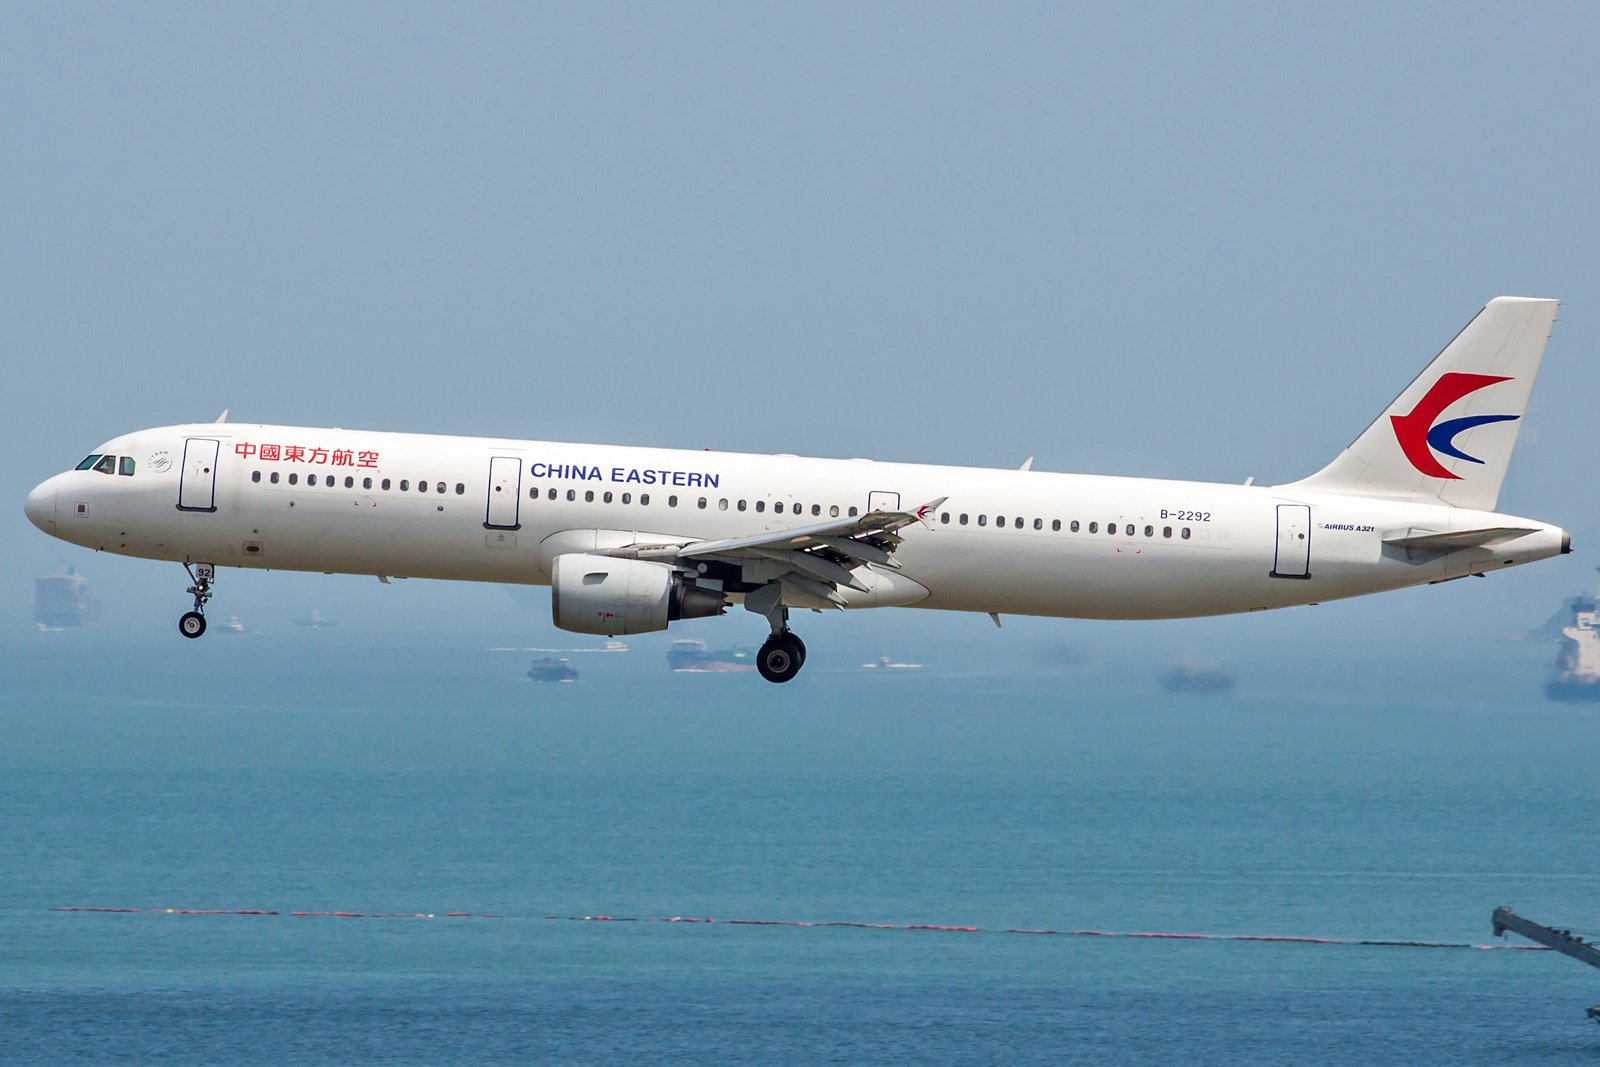 China Eastern Airlines Airbus A321-211 B-2292